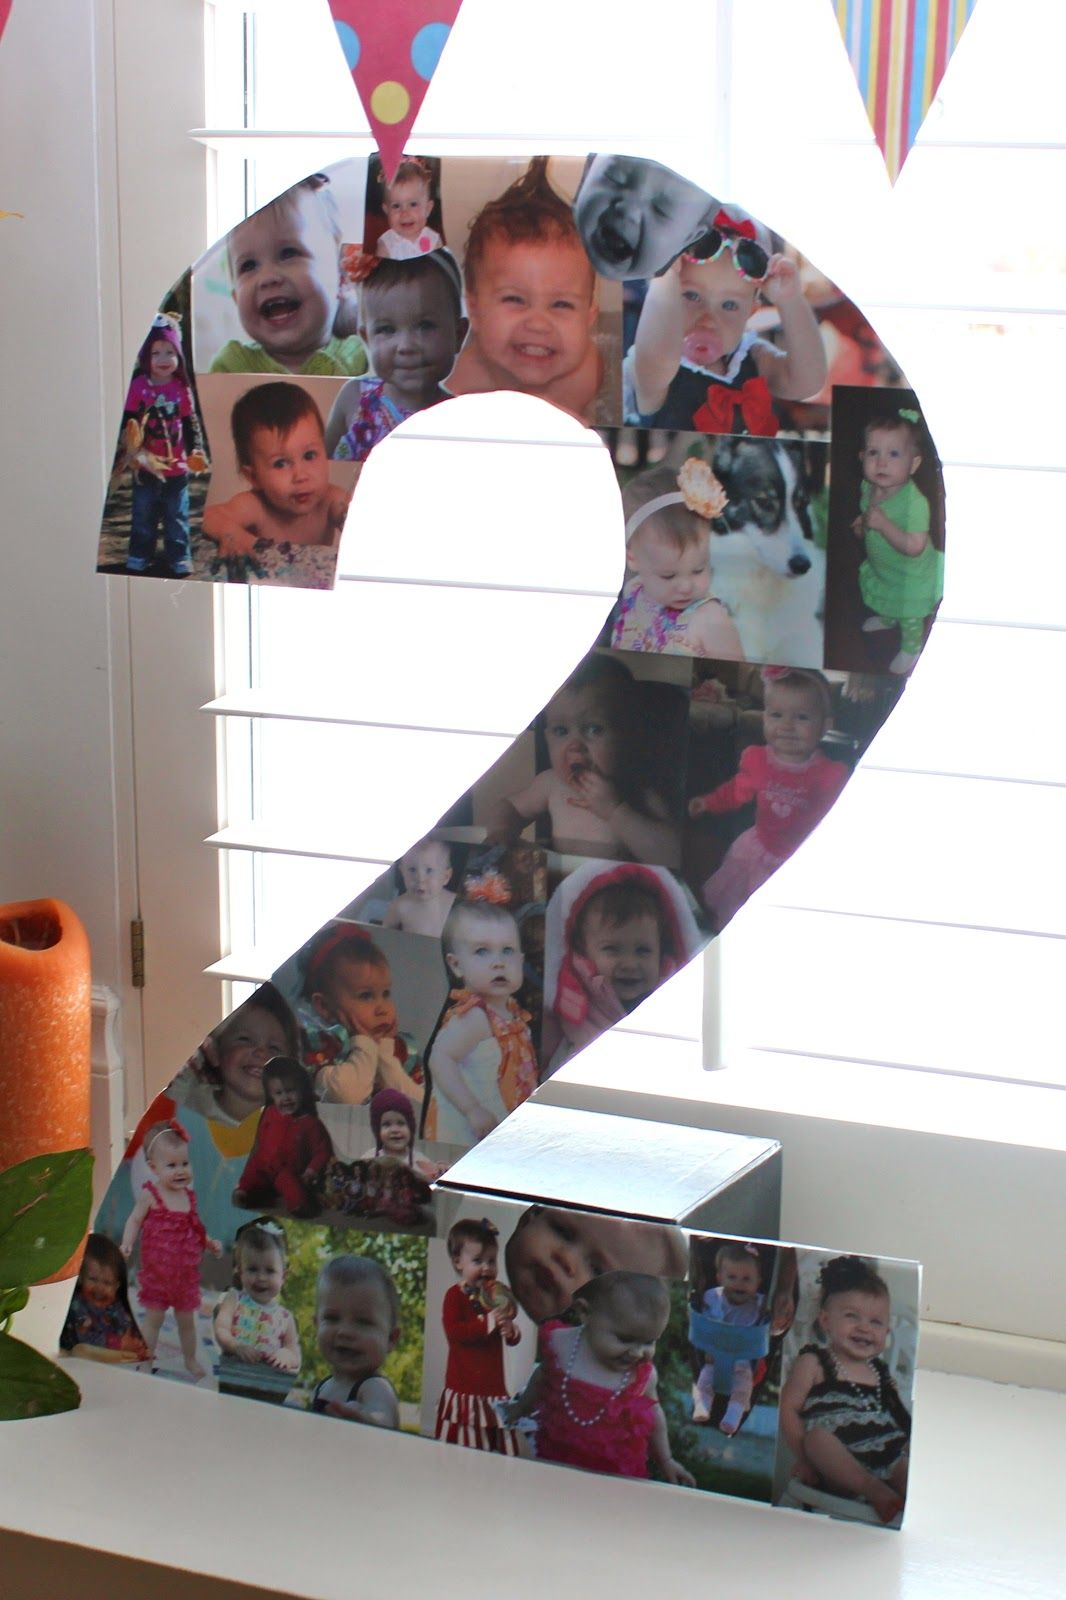 Taylor Joelle Designs Carnival Birthday Party Inspiration Collage